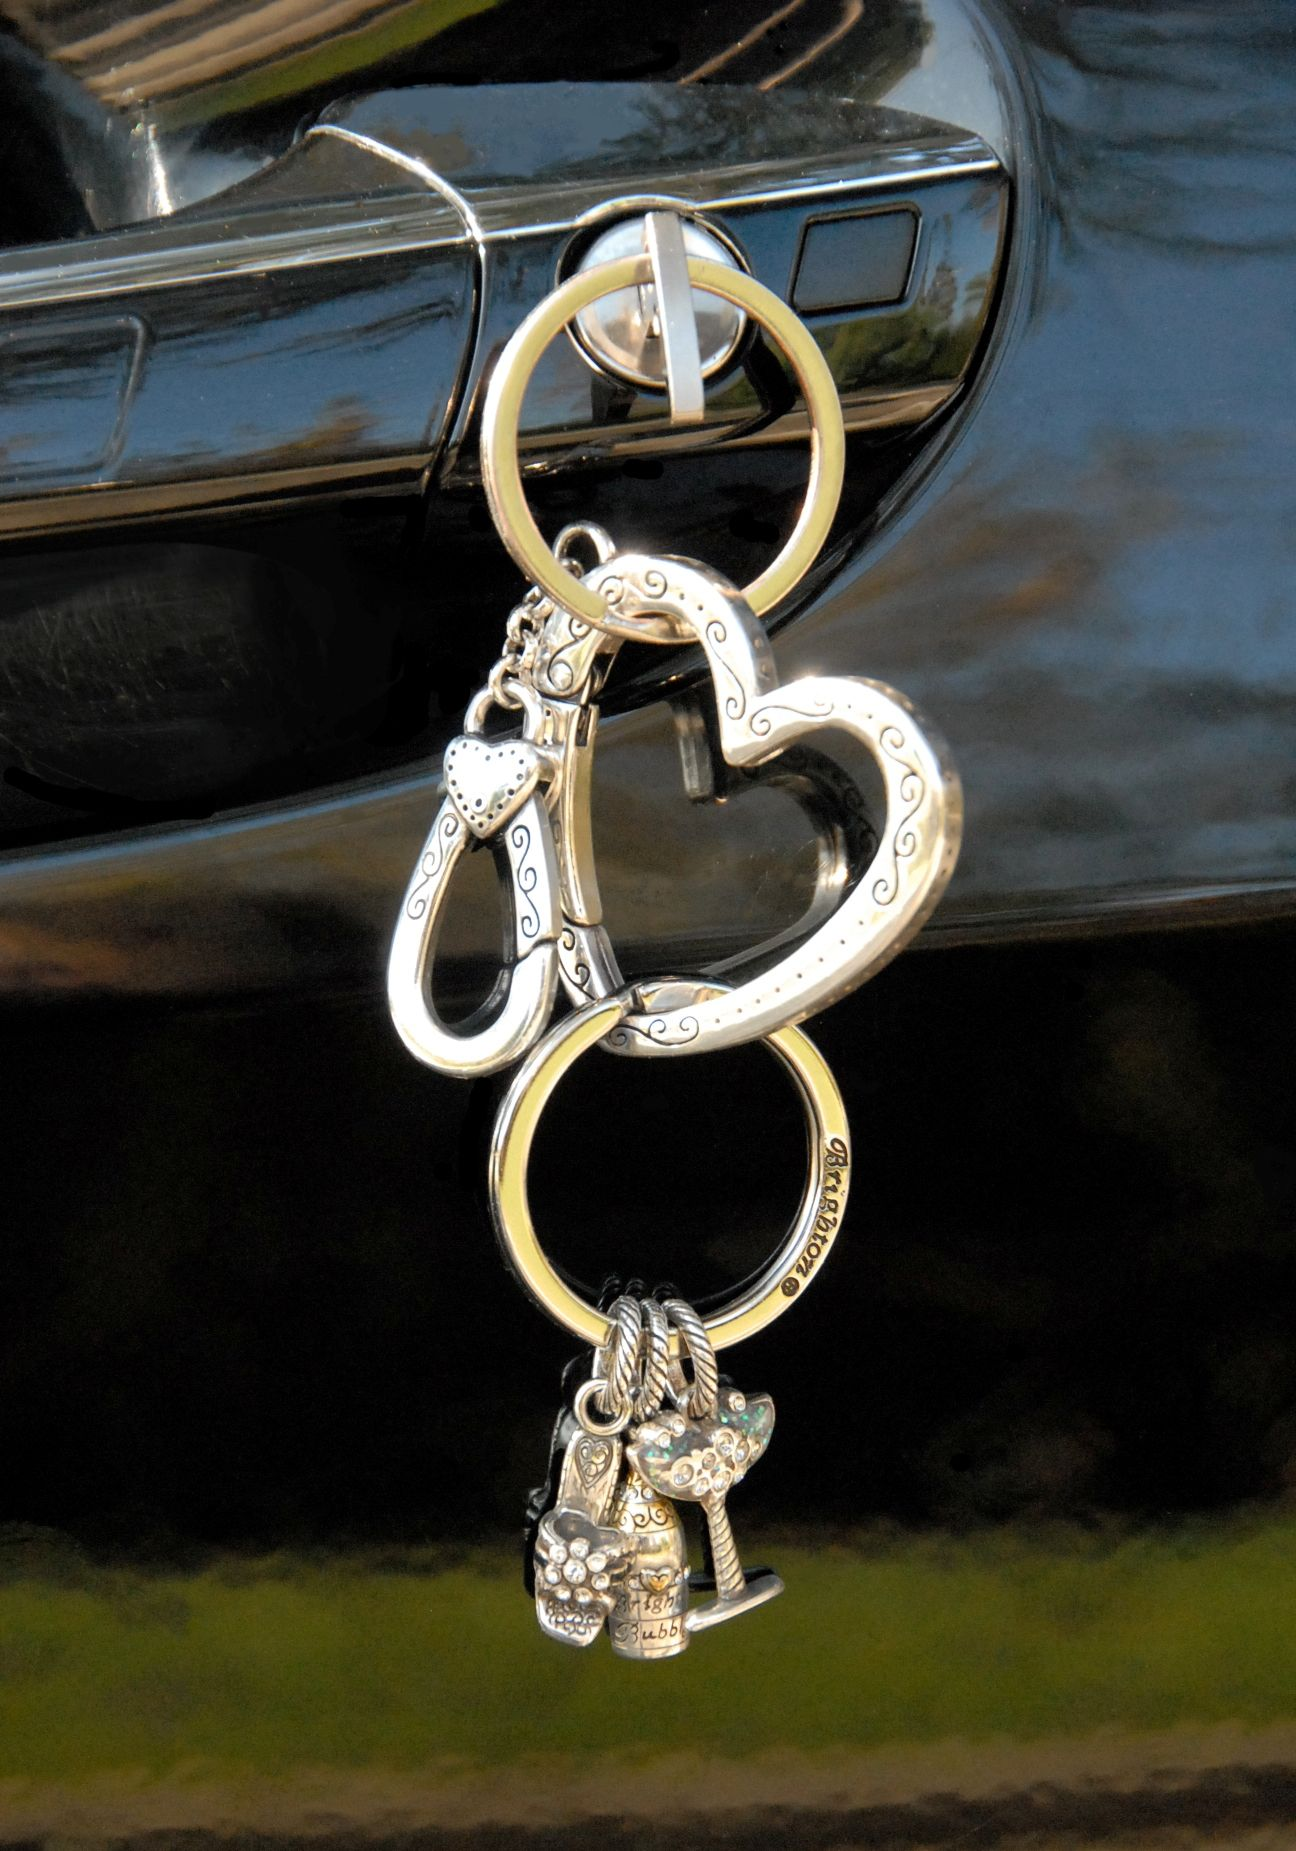 Valet Key Fob. Bought - Love . Products